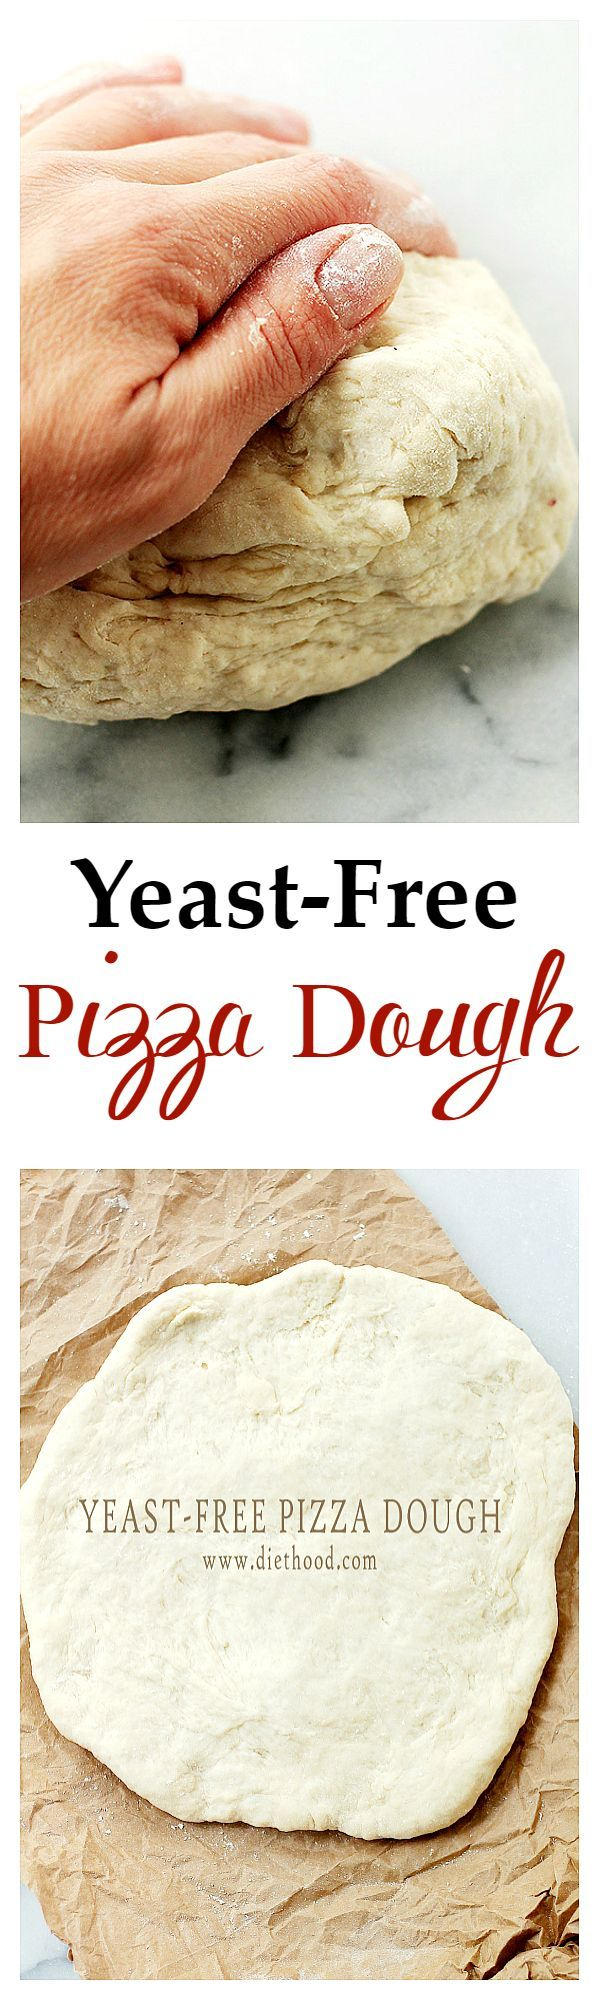 Yeast-Free Pizza Dough | www.diethood.com | Fast and simple recipe for Pizza Dough made without yeast! This is very good and SO easy to make!